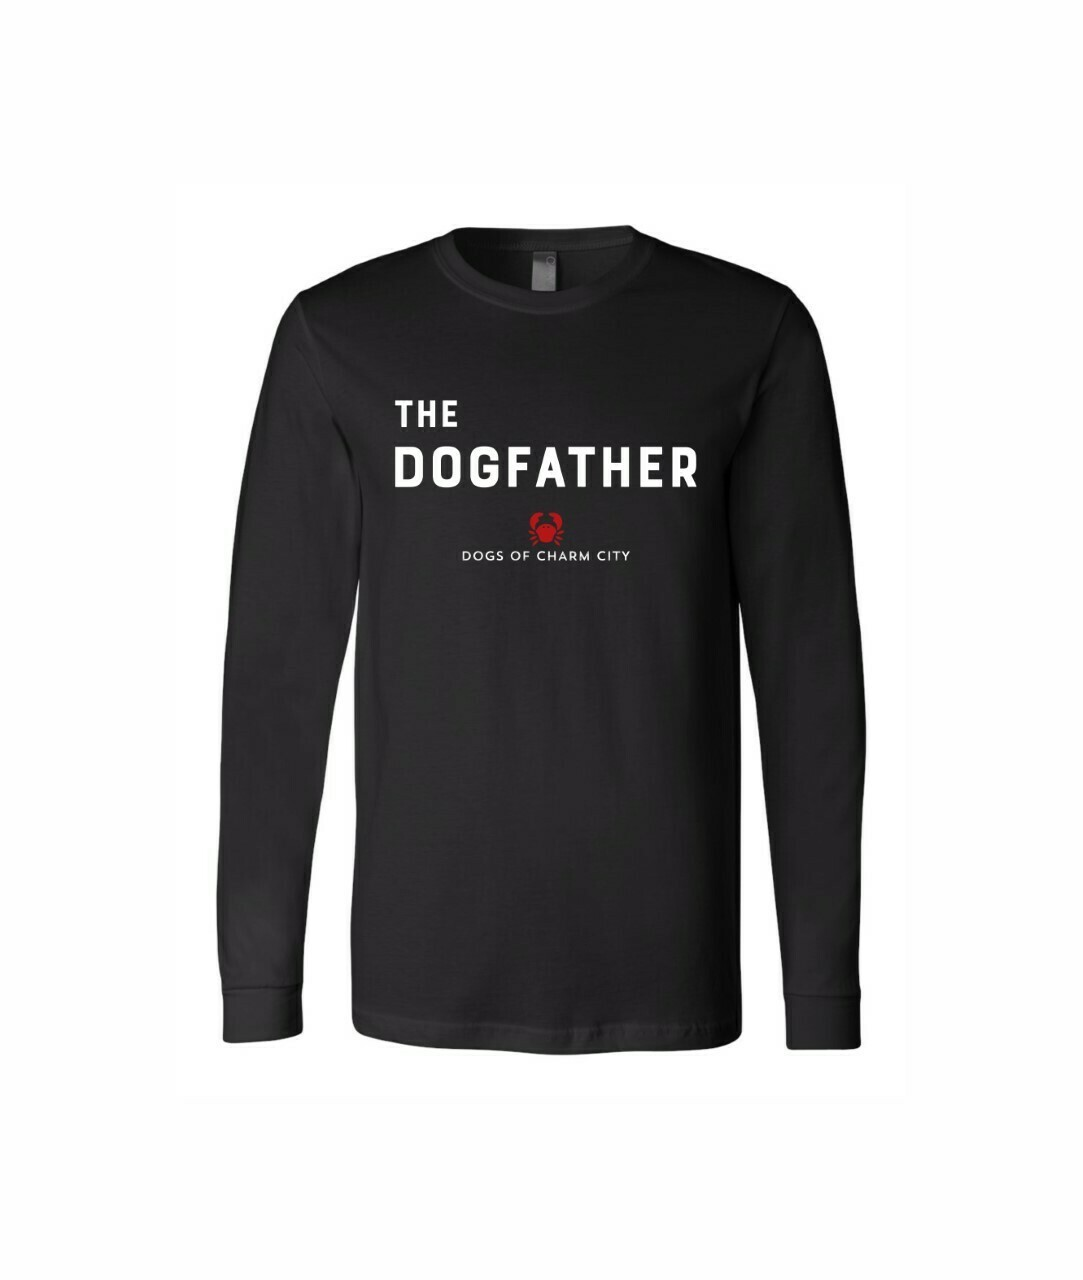 The Dogfather Long Sleeve Tee